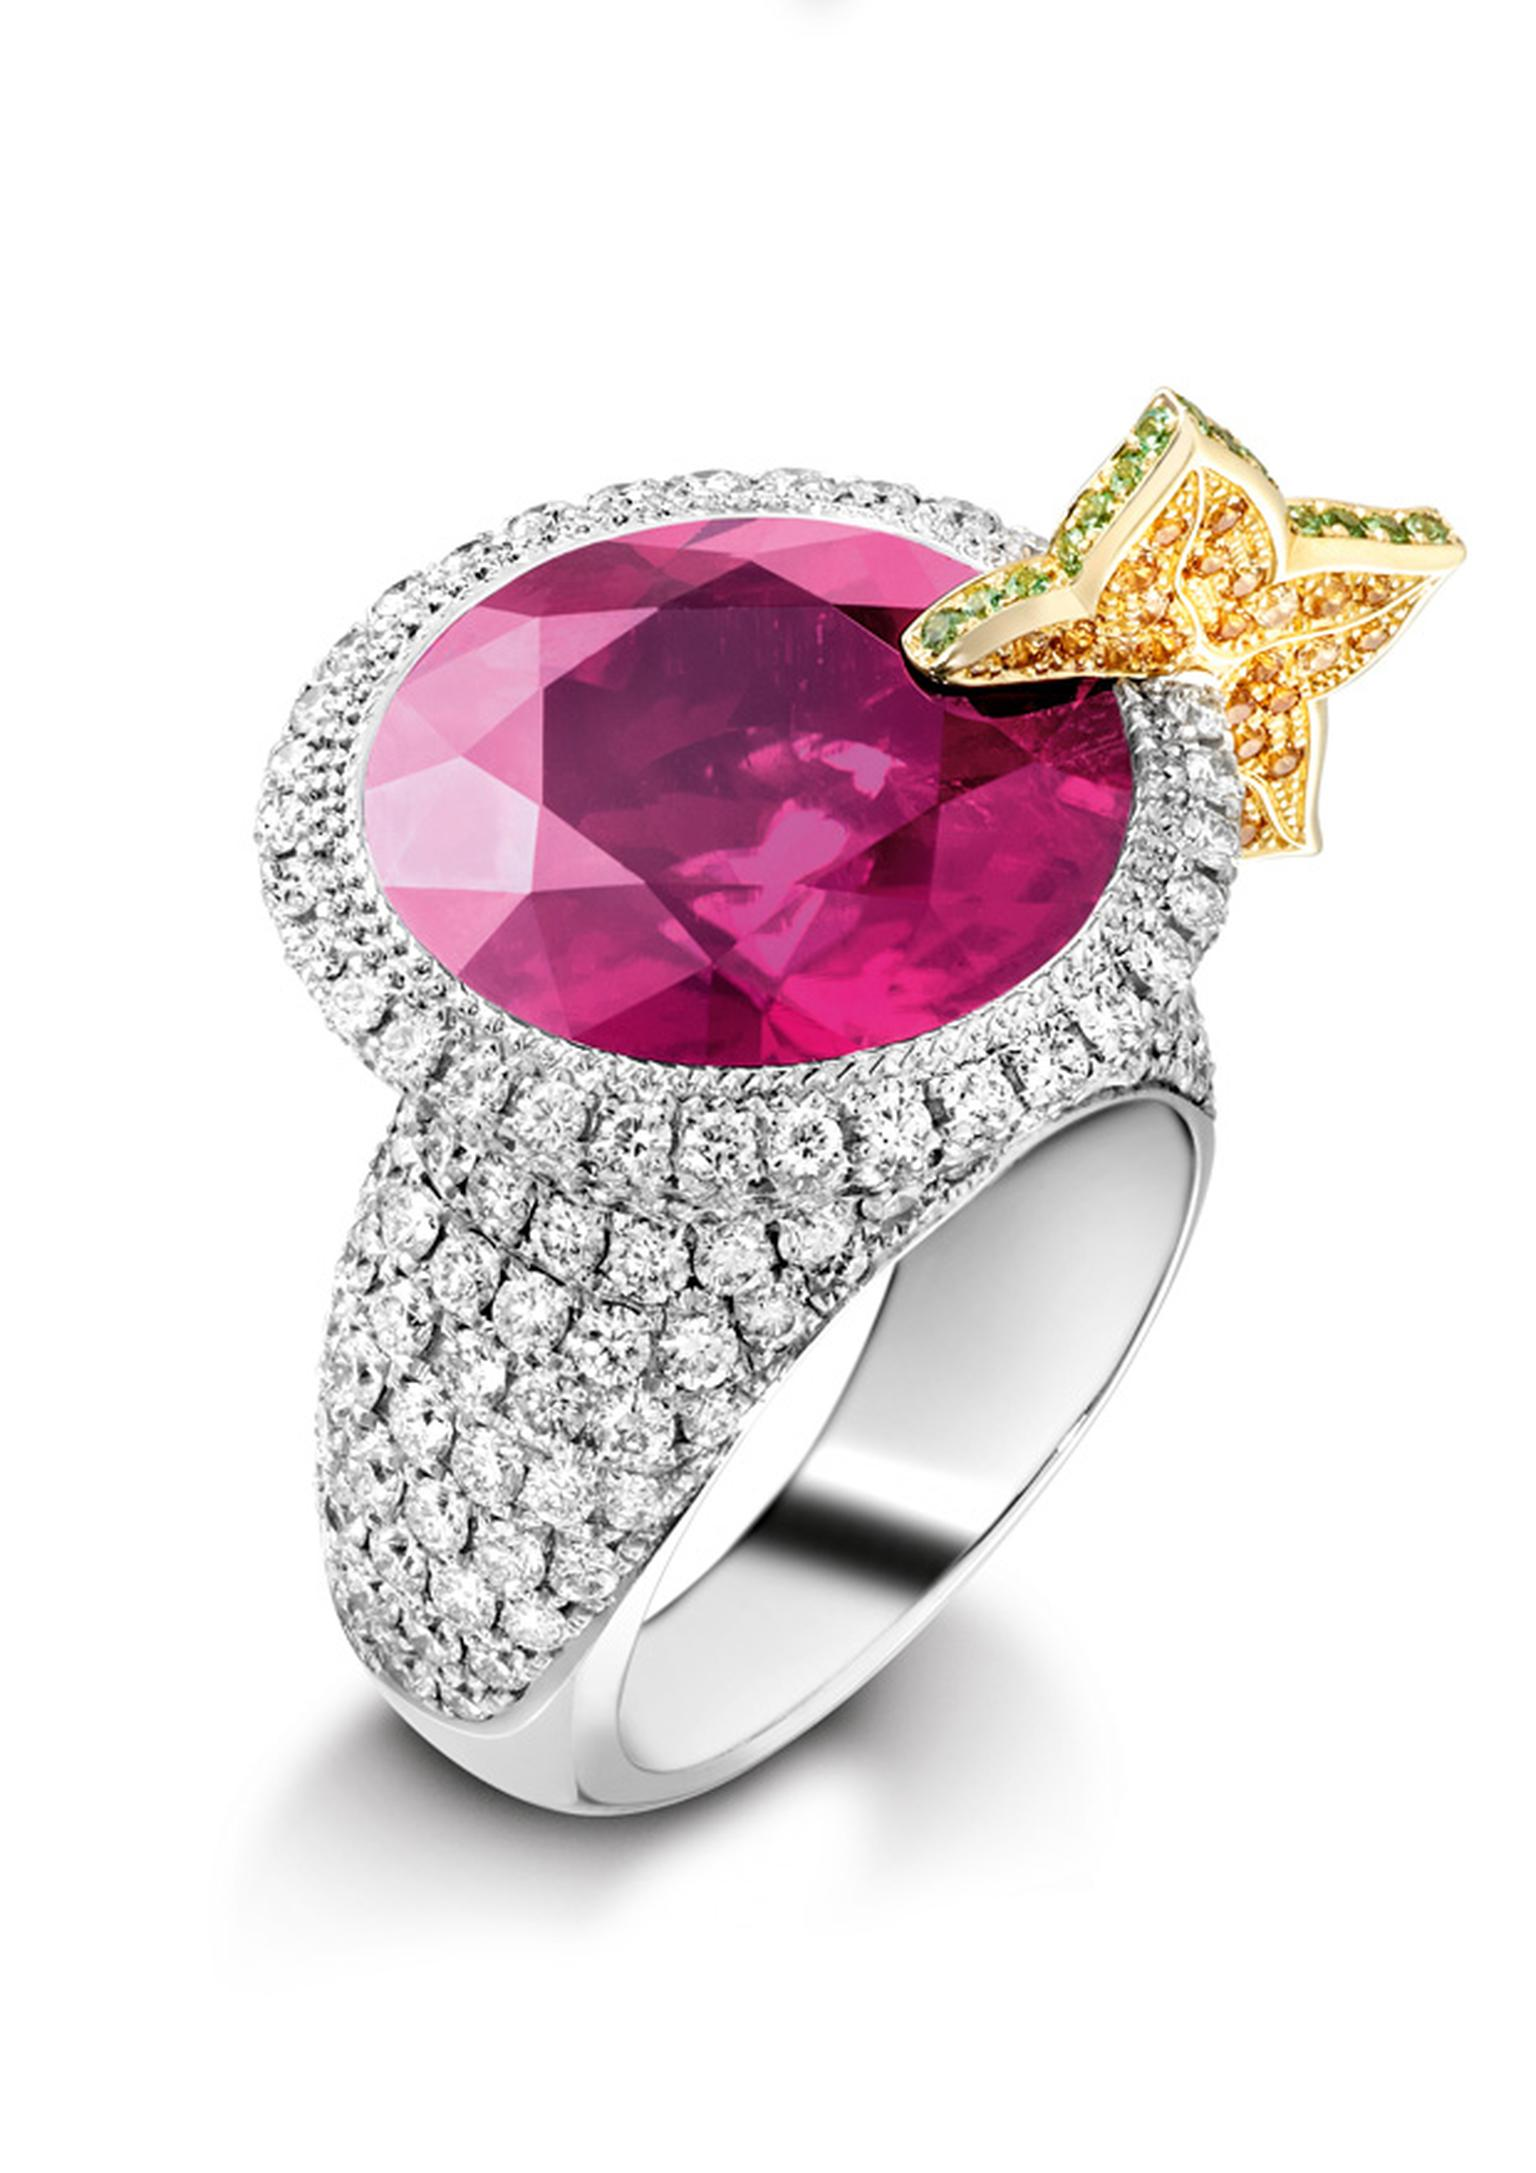 Piaget Cosmopolitan cocktail ring with rubelite, diamonds and citrine